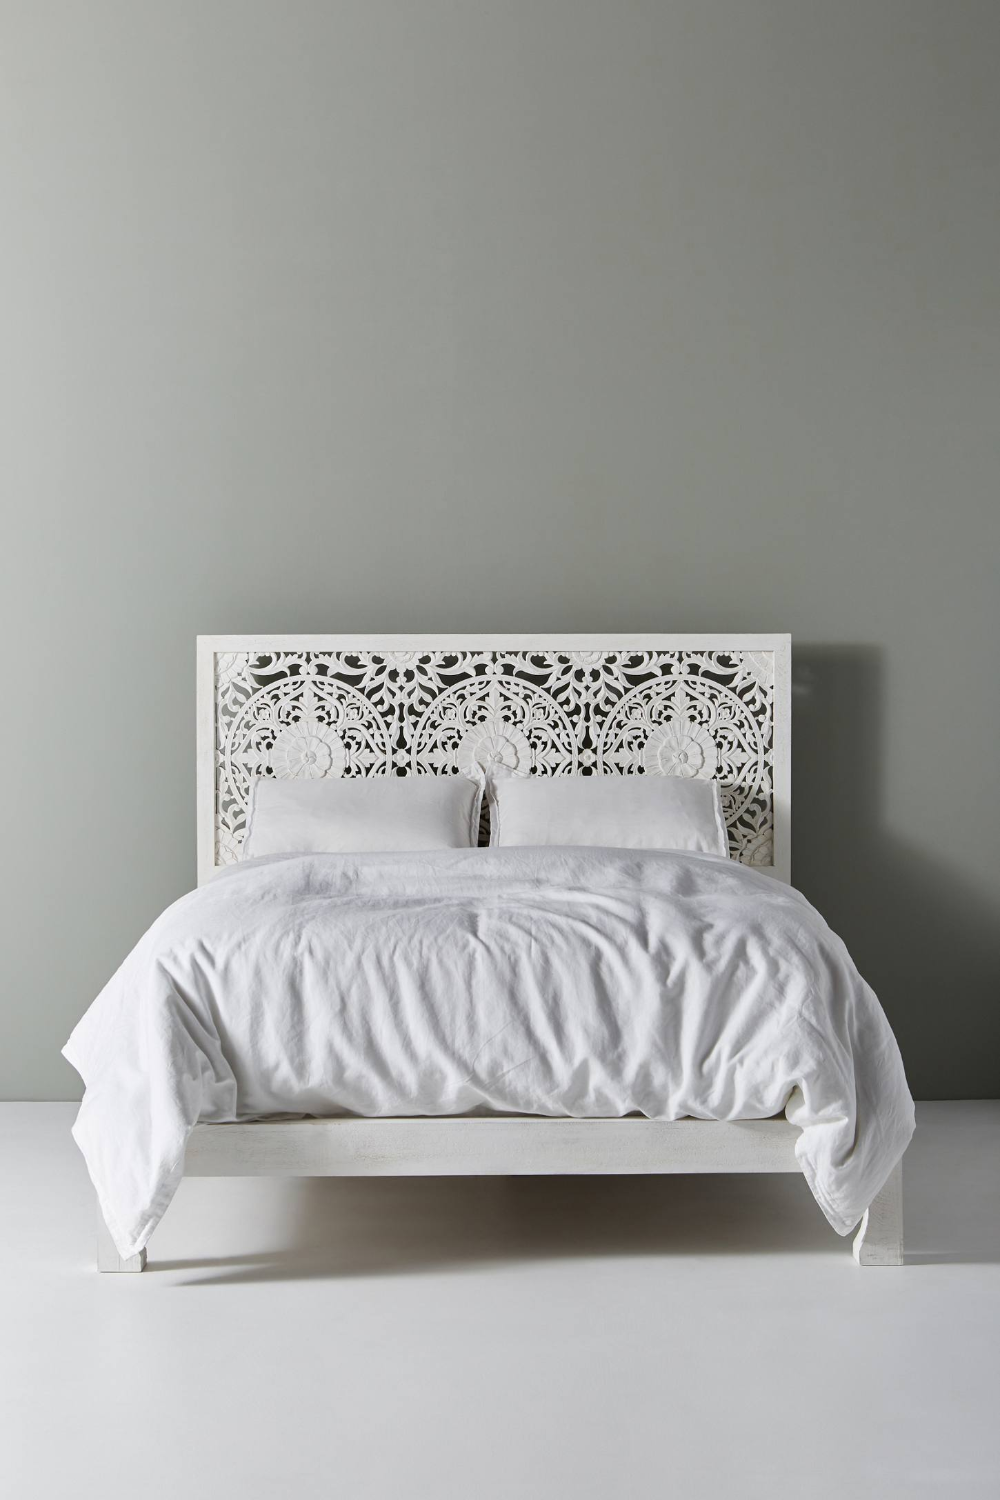 Handcarved Low Lombok Bed In 2020 Bed Frame Small Room Bedroom Bed